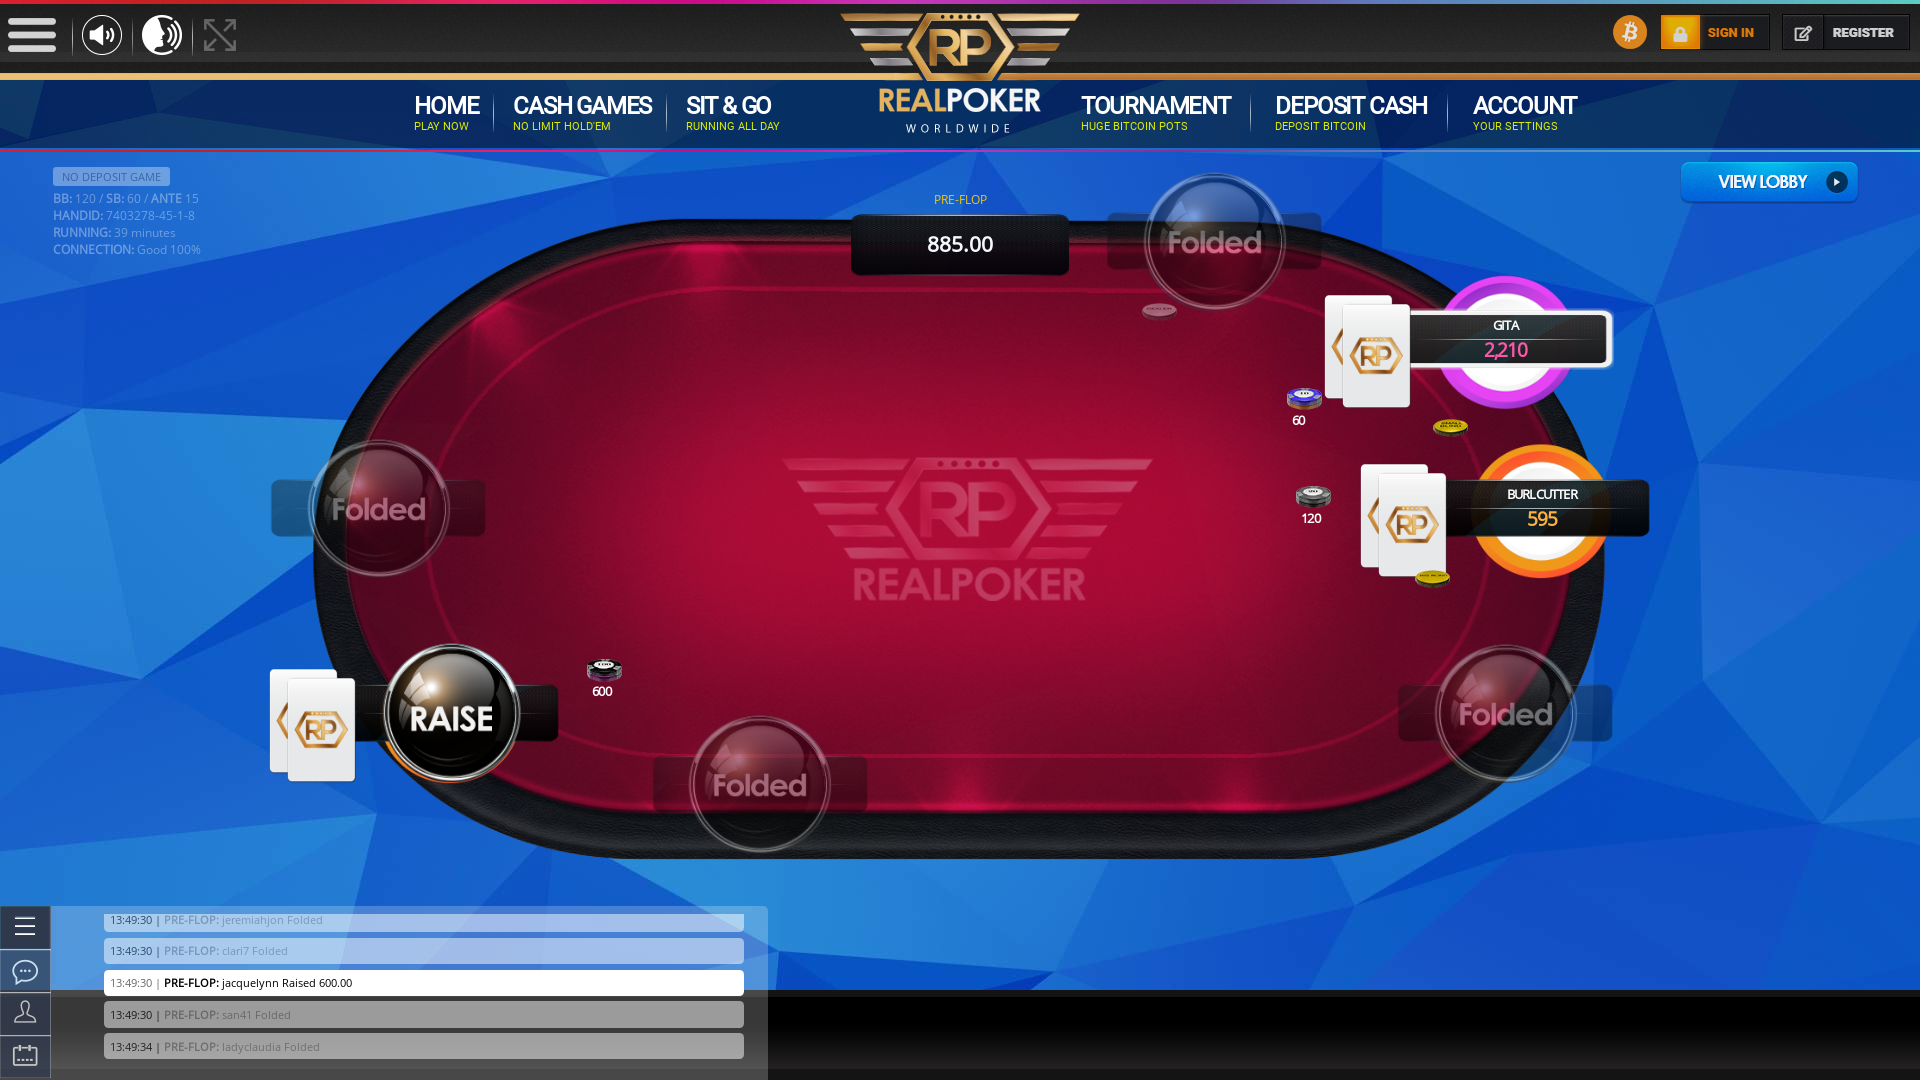 poker on a 10 player table in the 39th minute